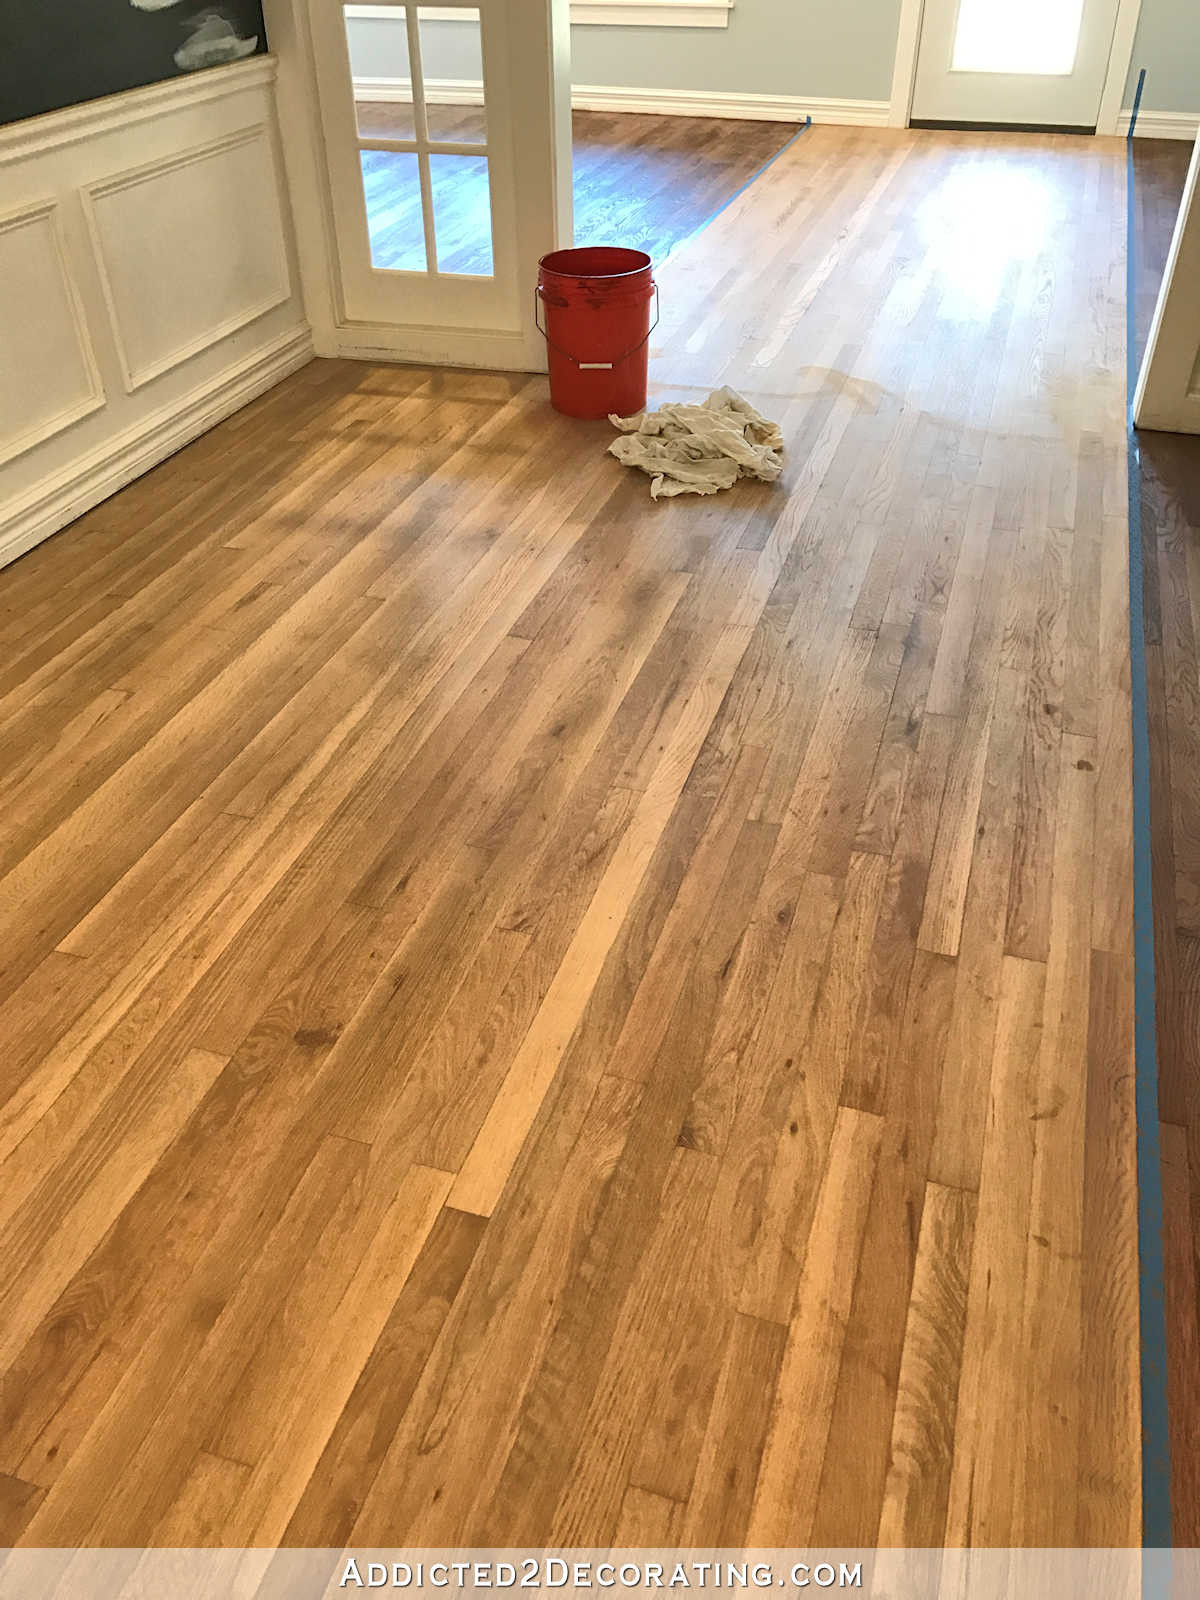 hardwood floor stain colors for oak of adventures in staining my red oak hardwood floors products process within staining red oak hardwood floors 8 entryway and music room wood conditioner